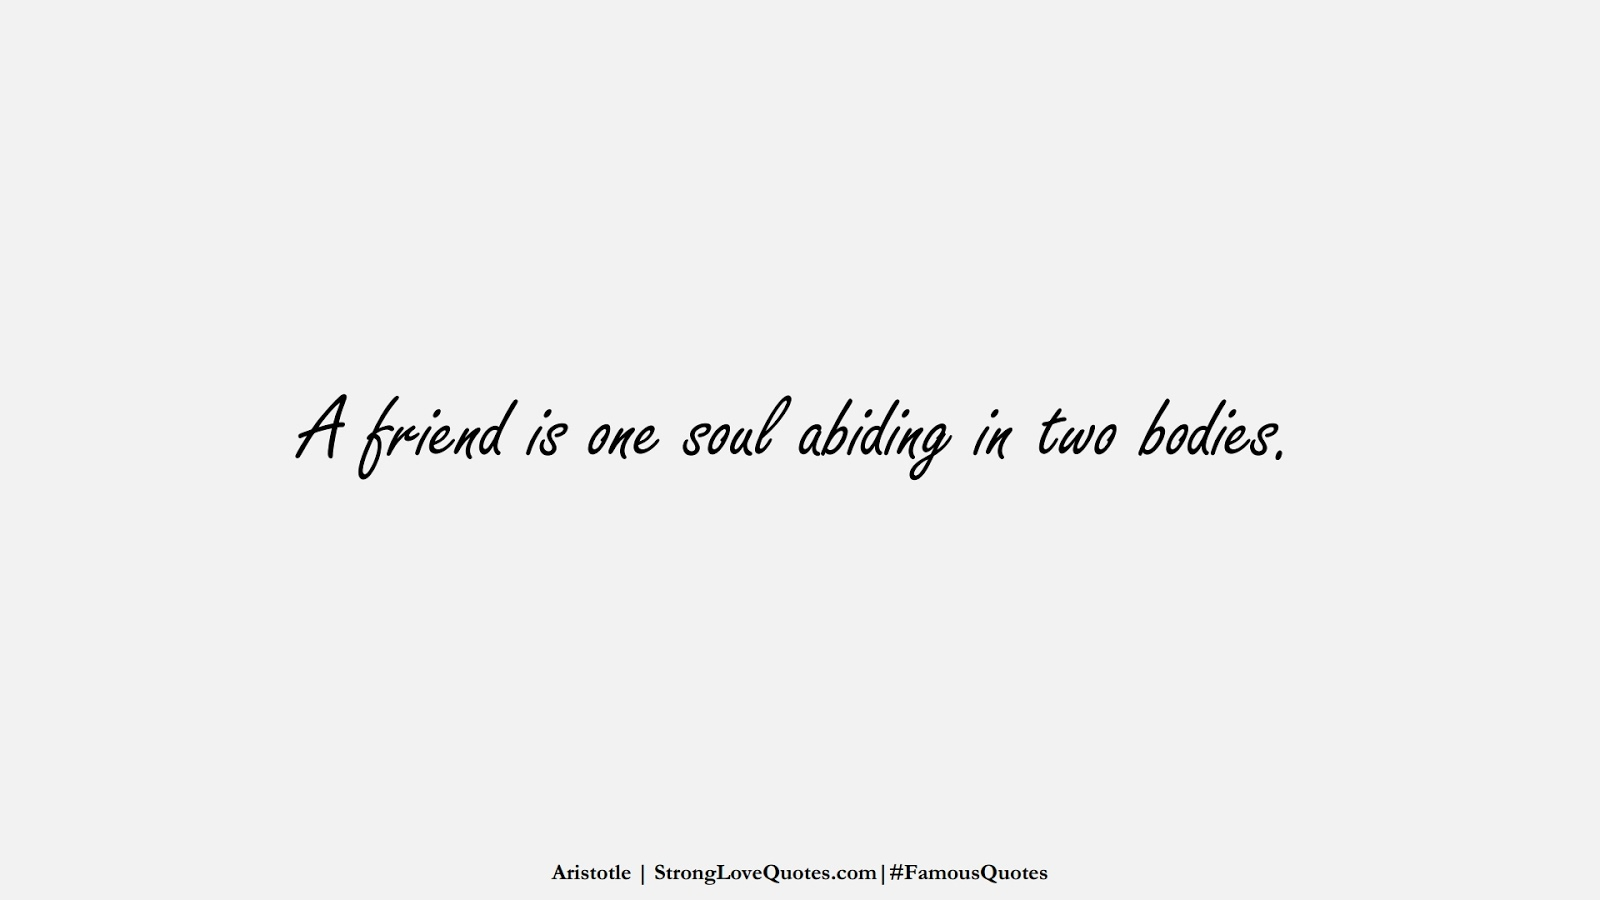 A friend is one soul abiding in two bodies. (Aristotle);  #FamousQuotes